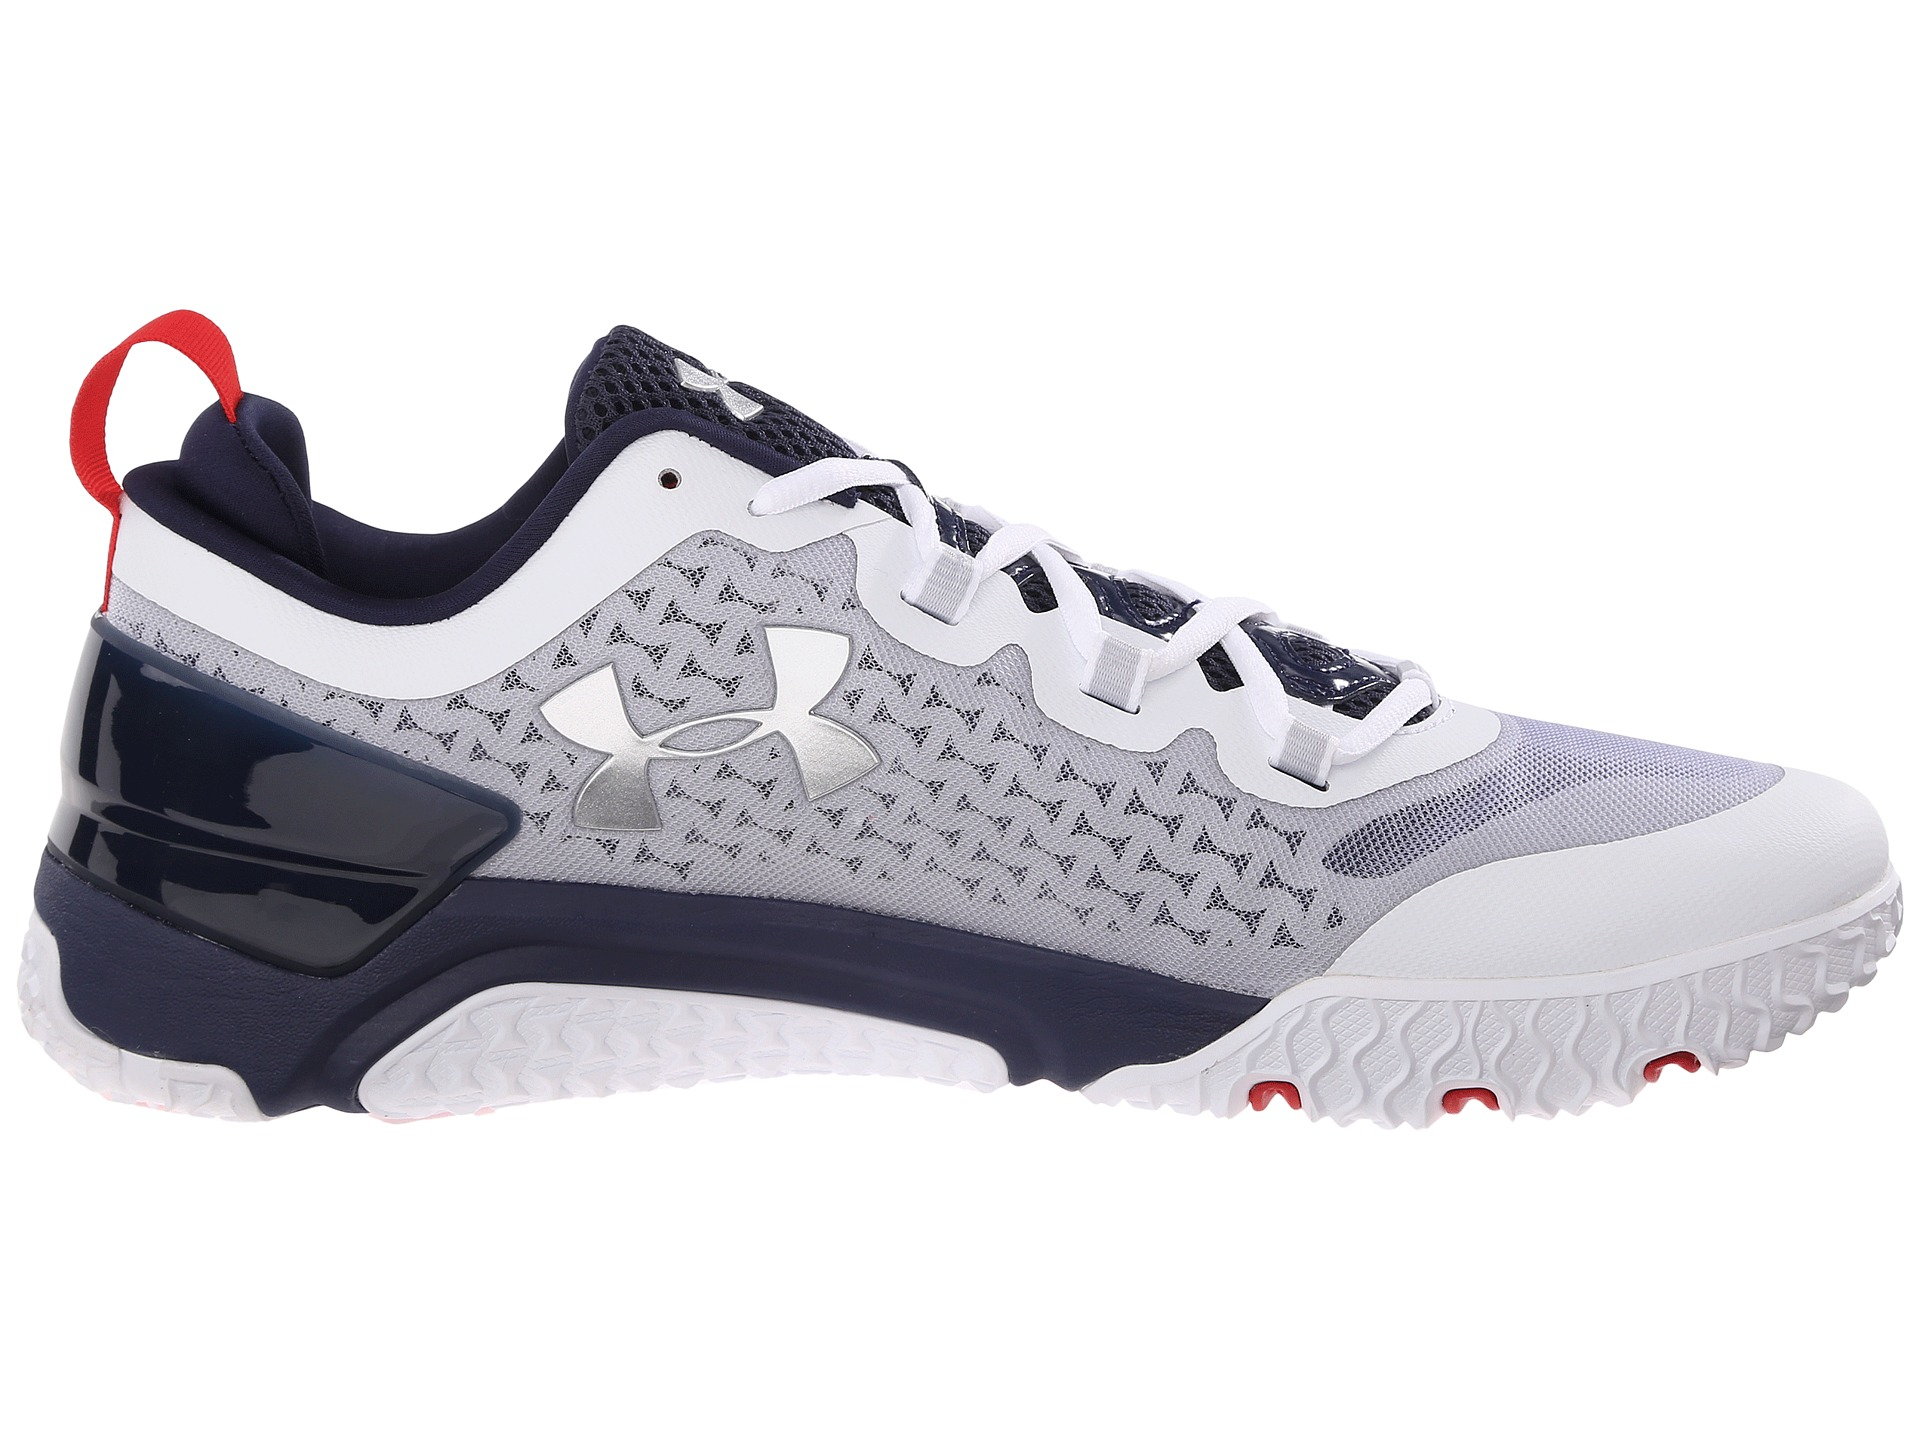 Under Armour Leather Shoes White